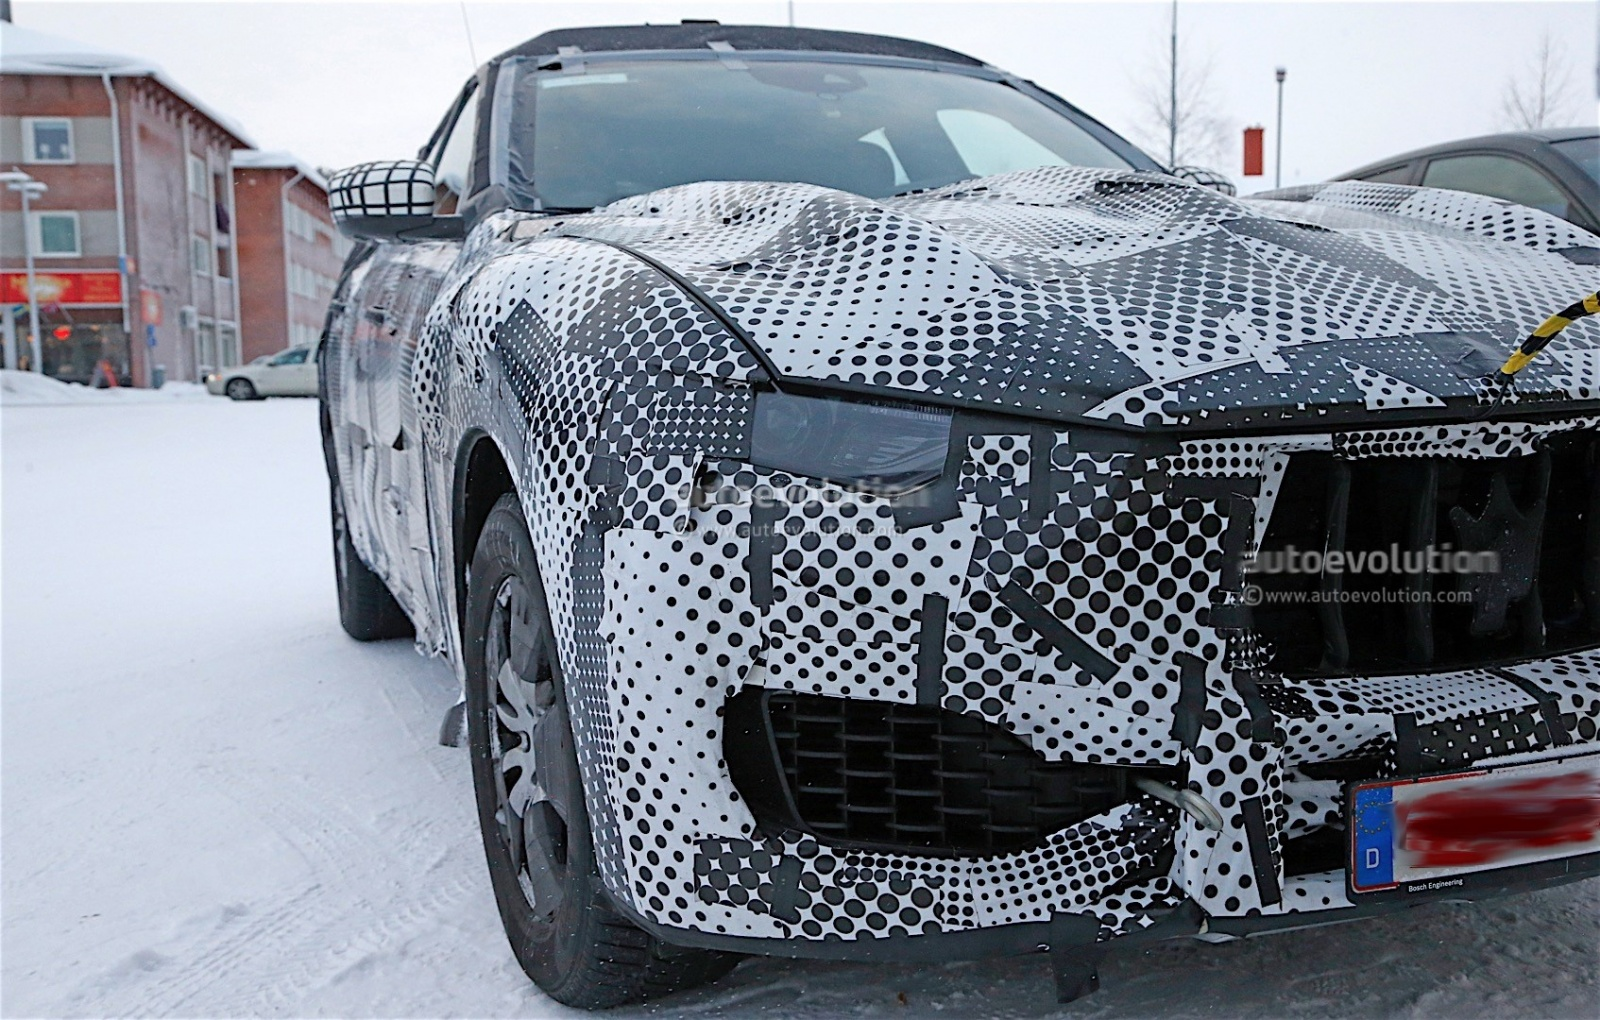 maserati-levante-spy-shots-reveal-interior-of-the-trident-s-first-suv_6